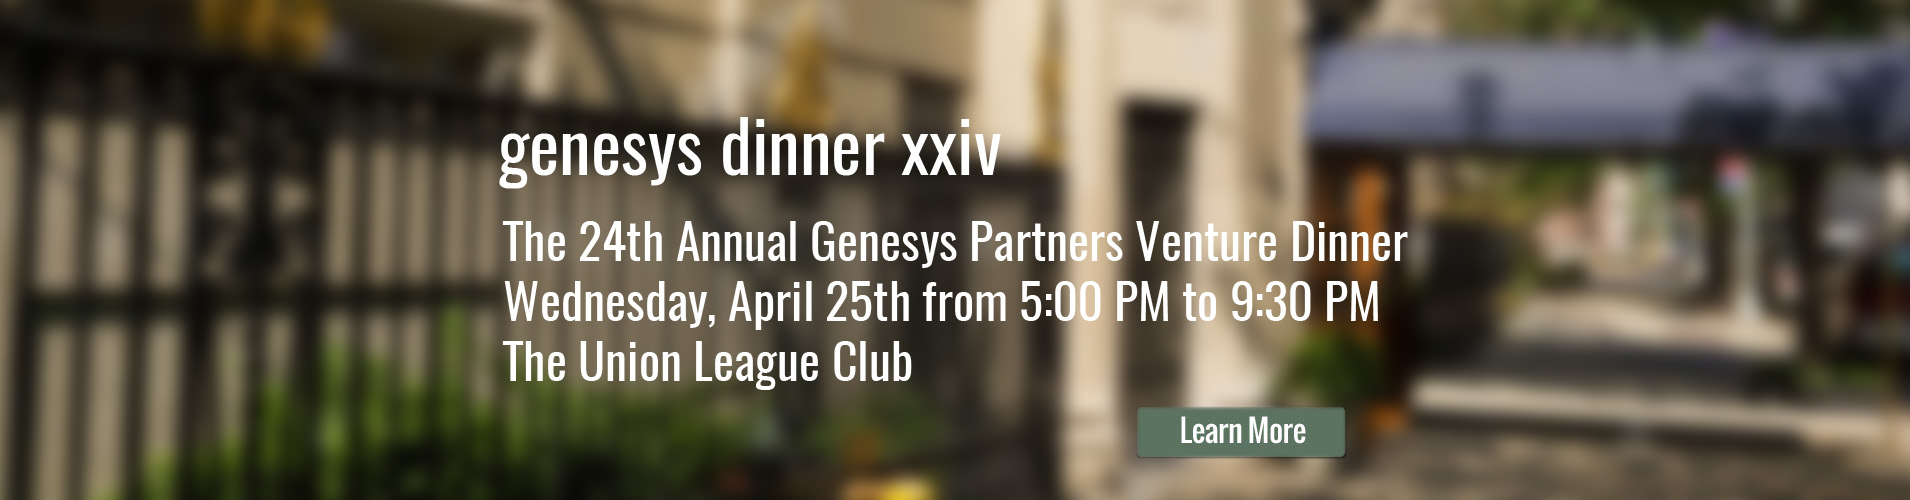 23rd Annual Genesys Partners Venture Dinner